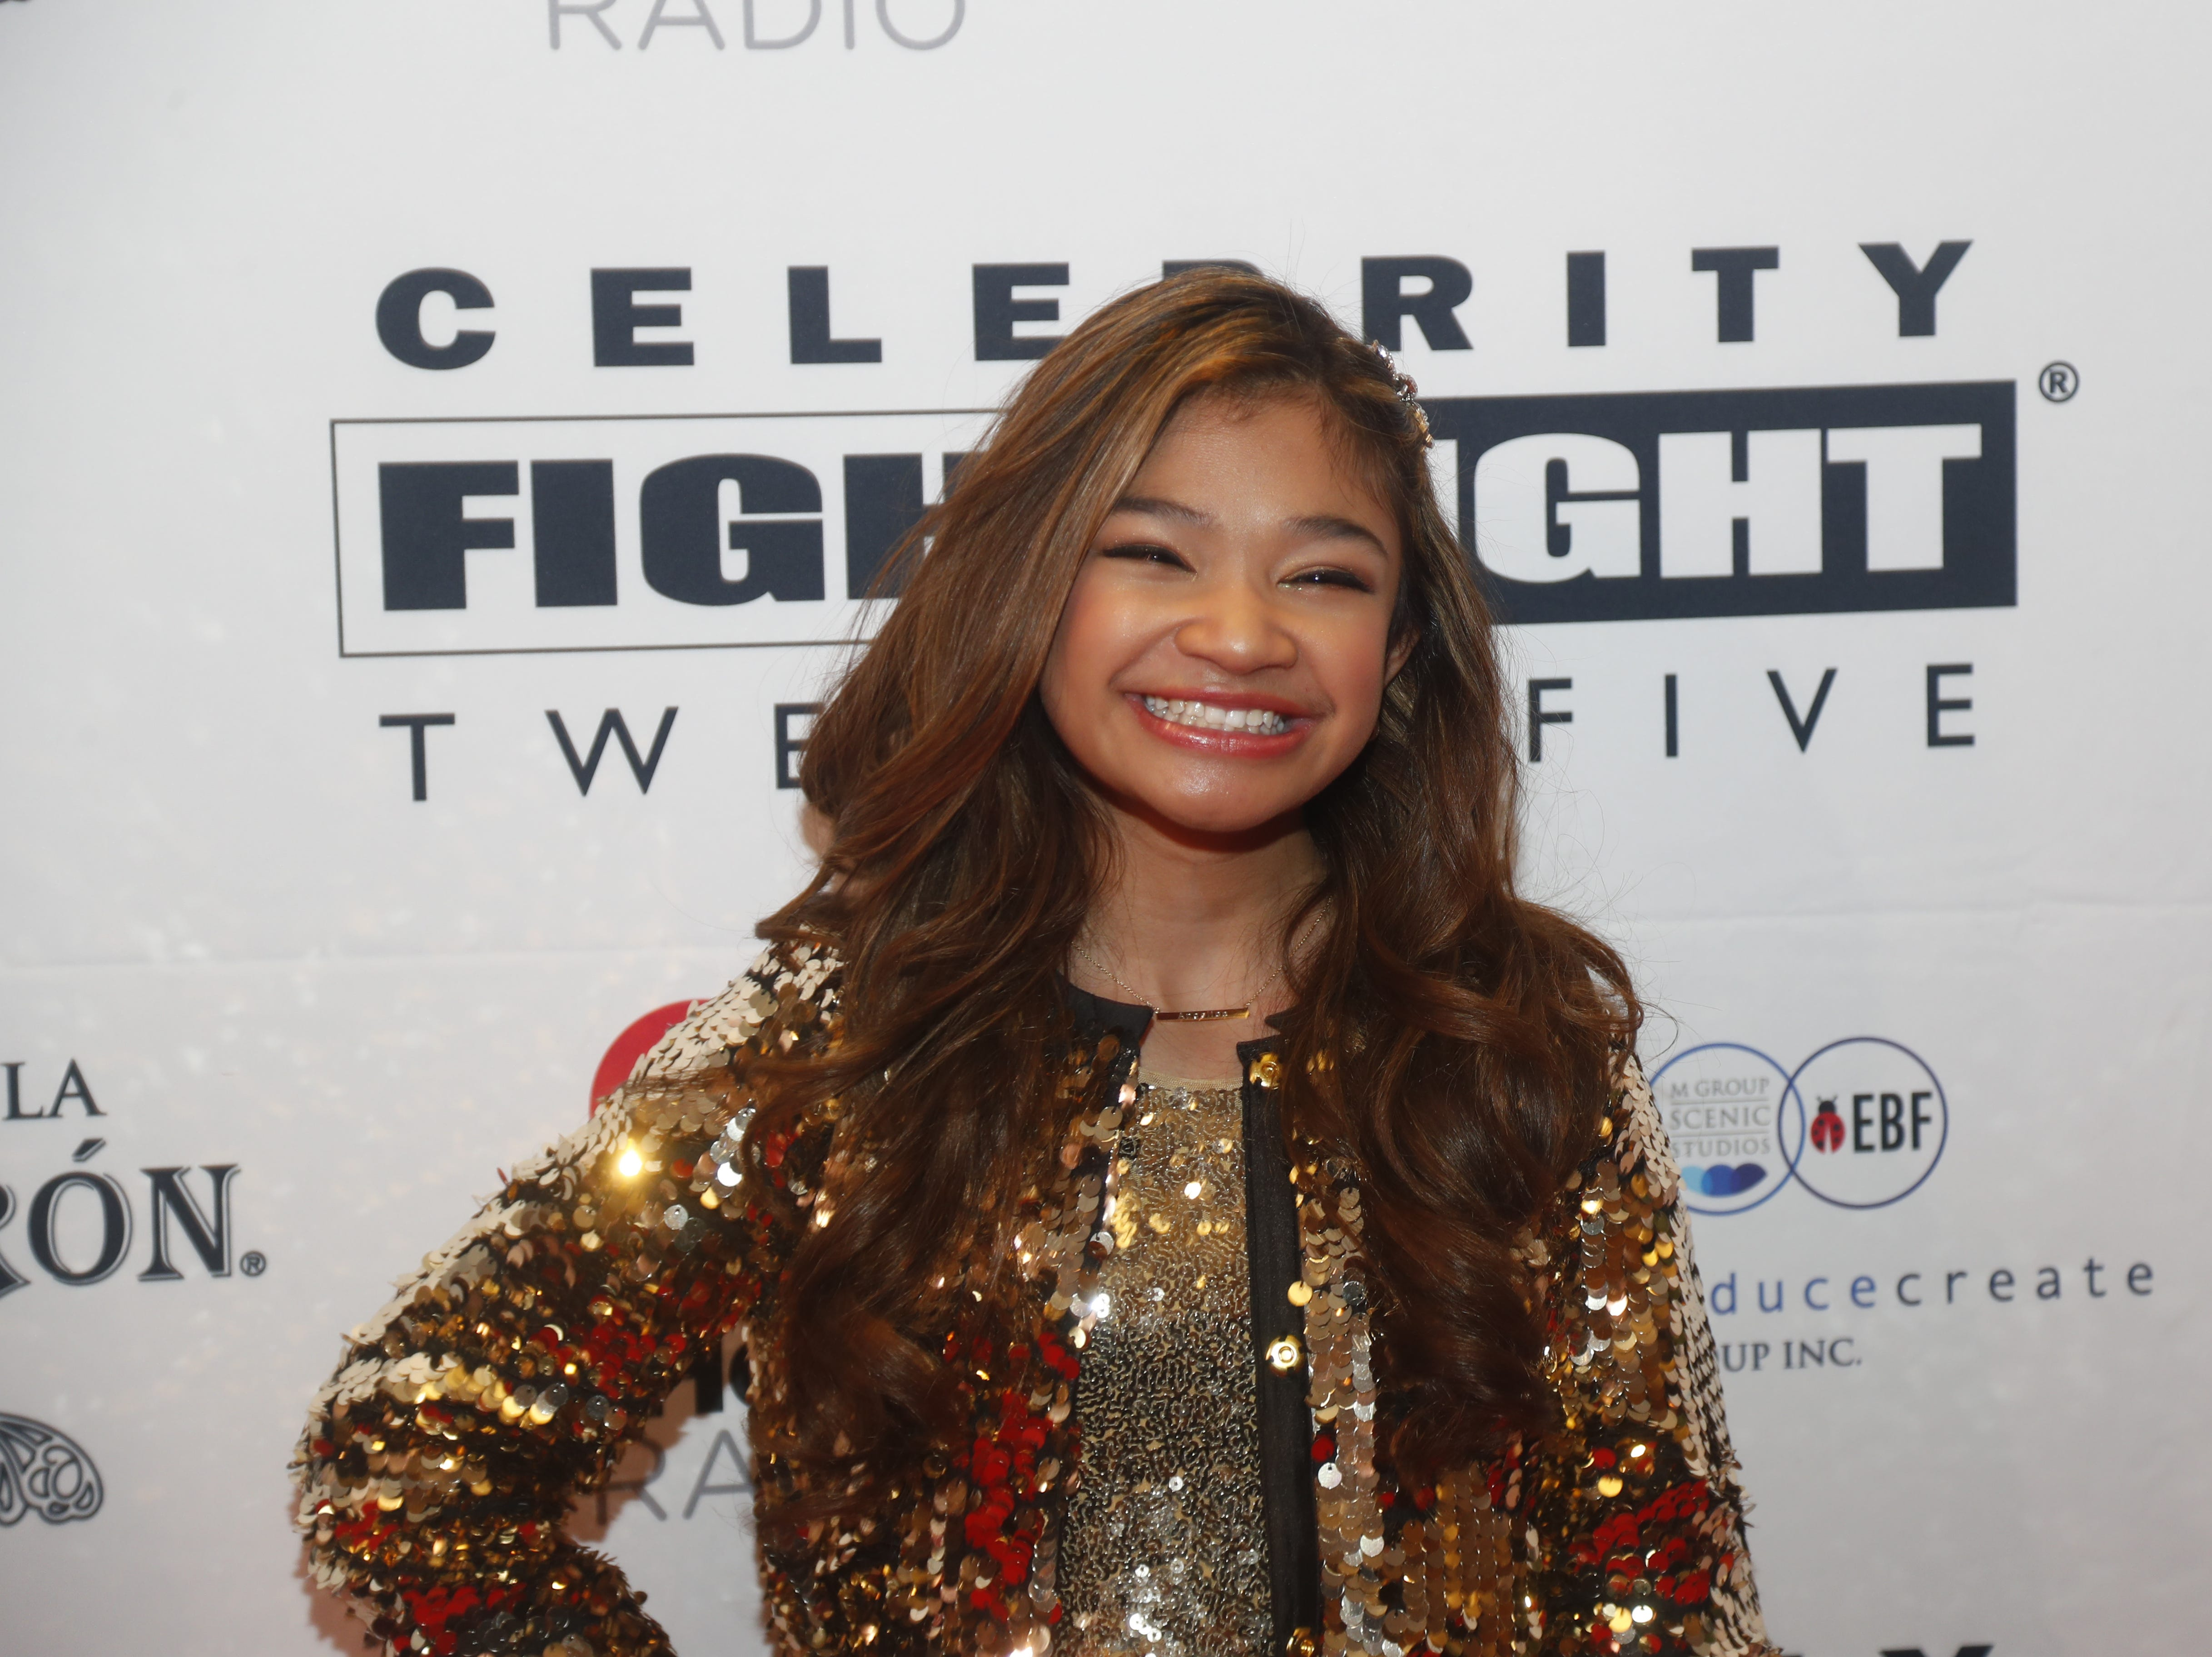 Angelica Hale poses for pictures during the Celebrity Fight Night red carpet in Scottsdale, Ariz., on March 23, 2019.